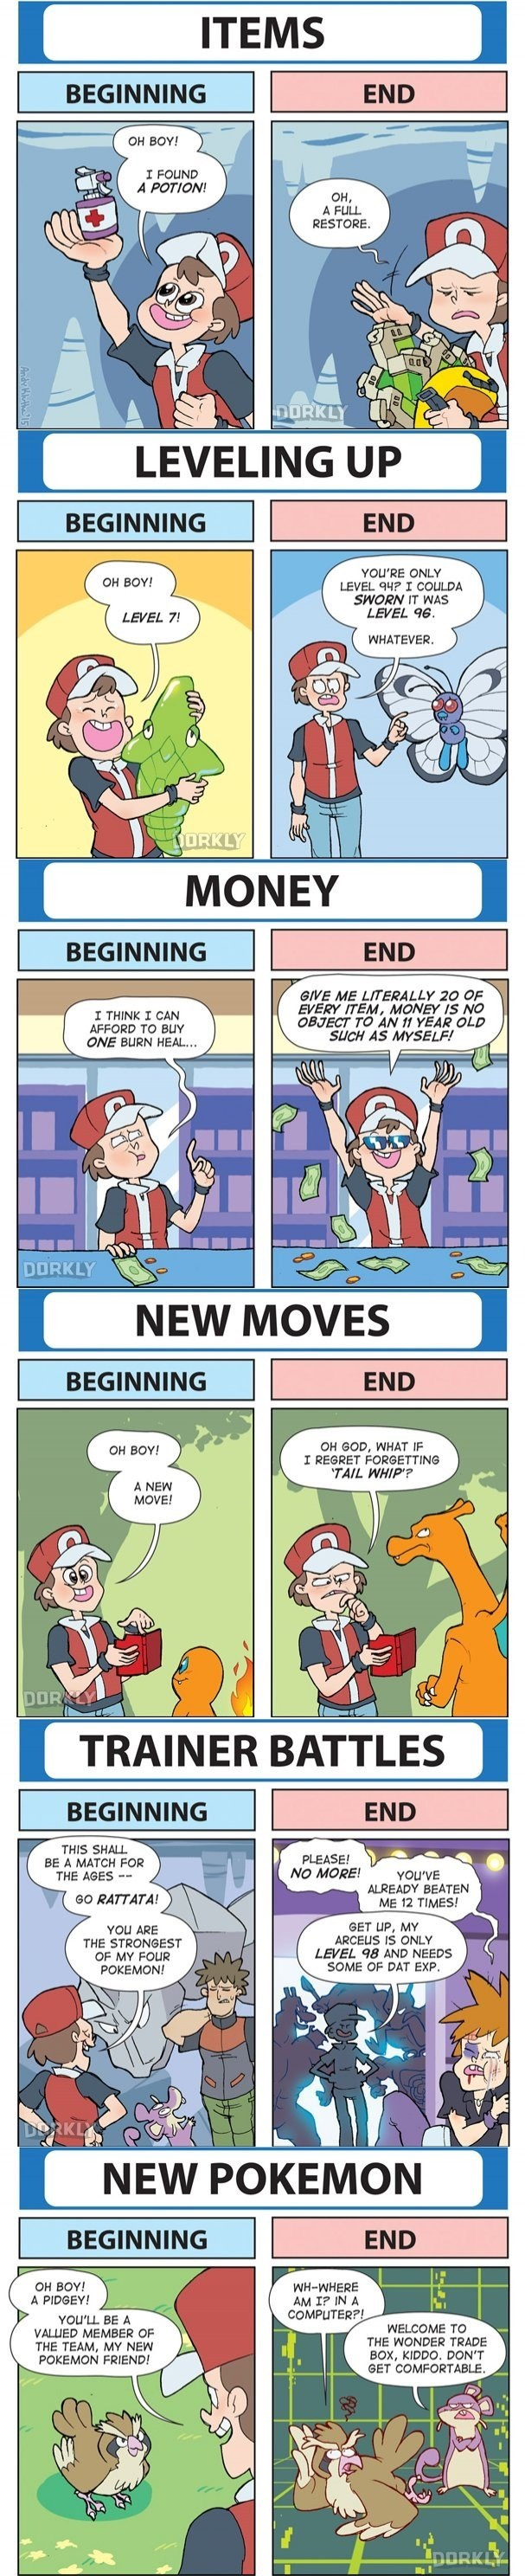 pokemon memes beginning vs end of game